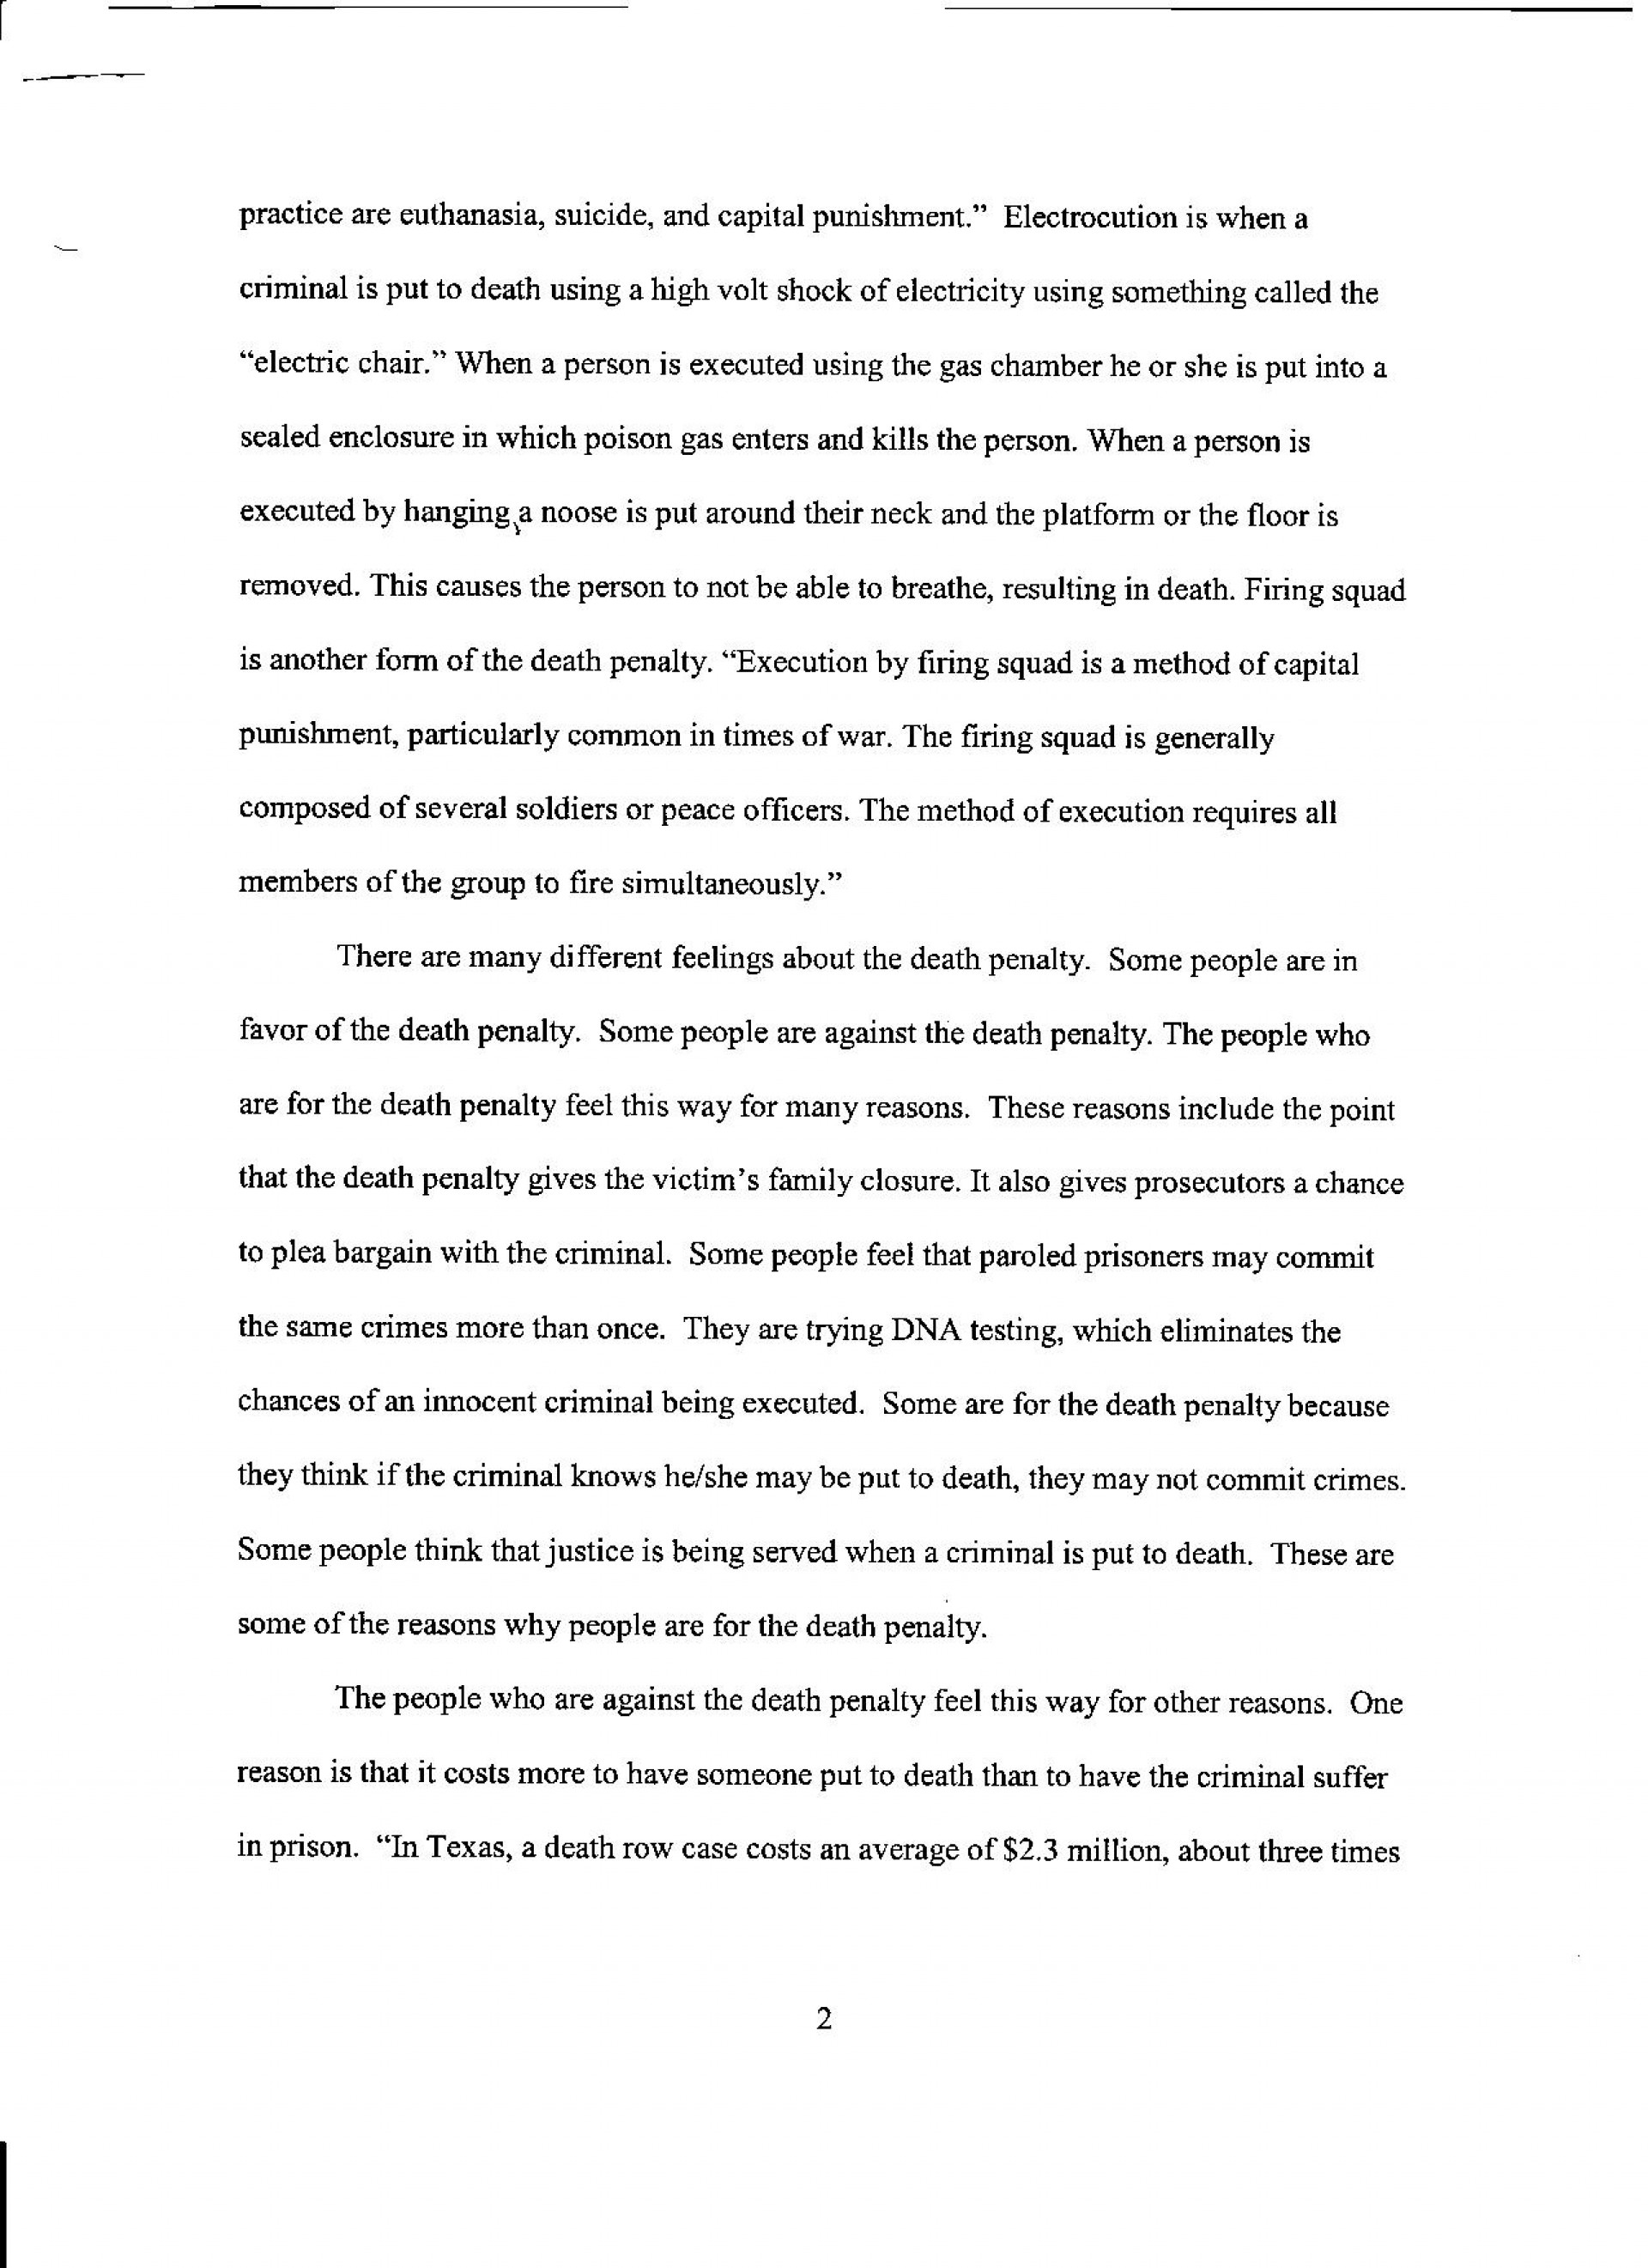 011 Death Penalty Research Paper Thesis Statement Pg Astounding 1920